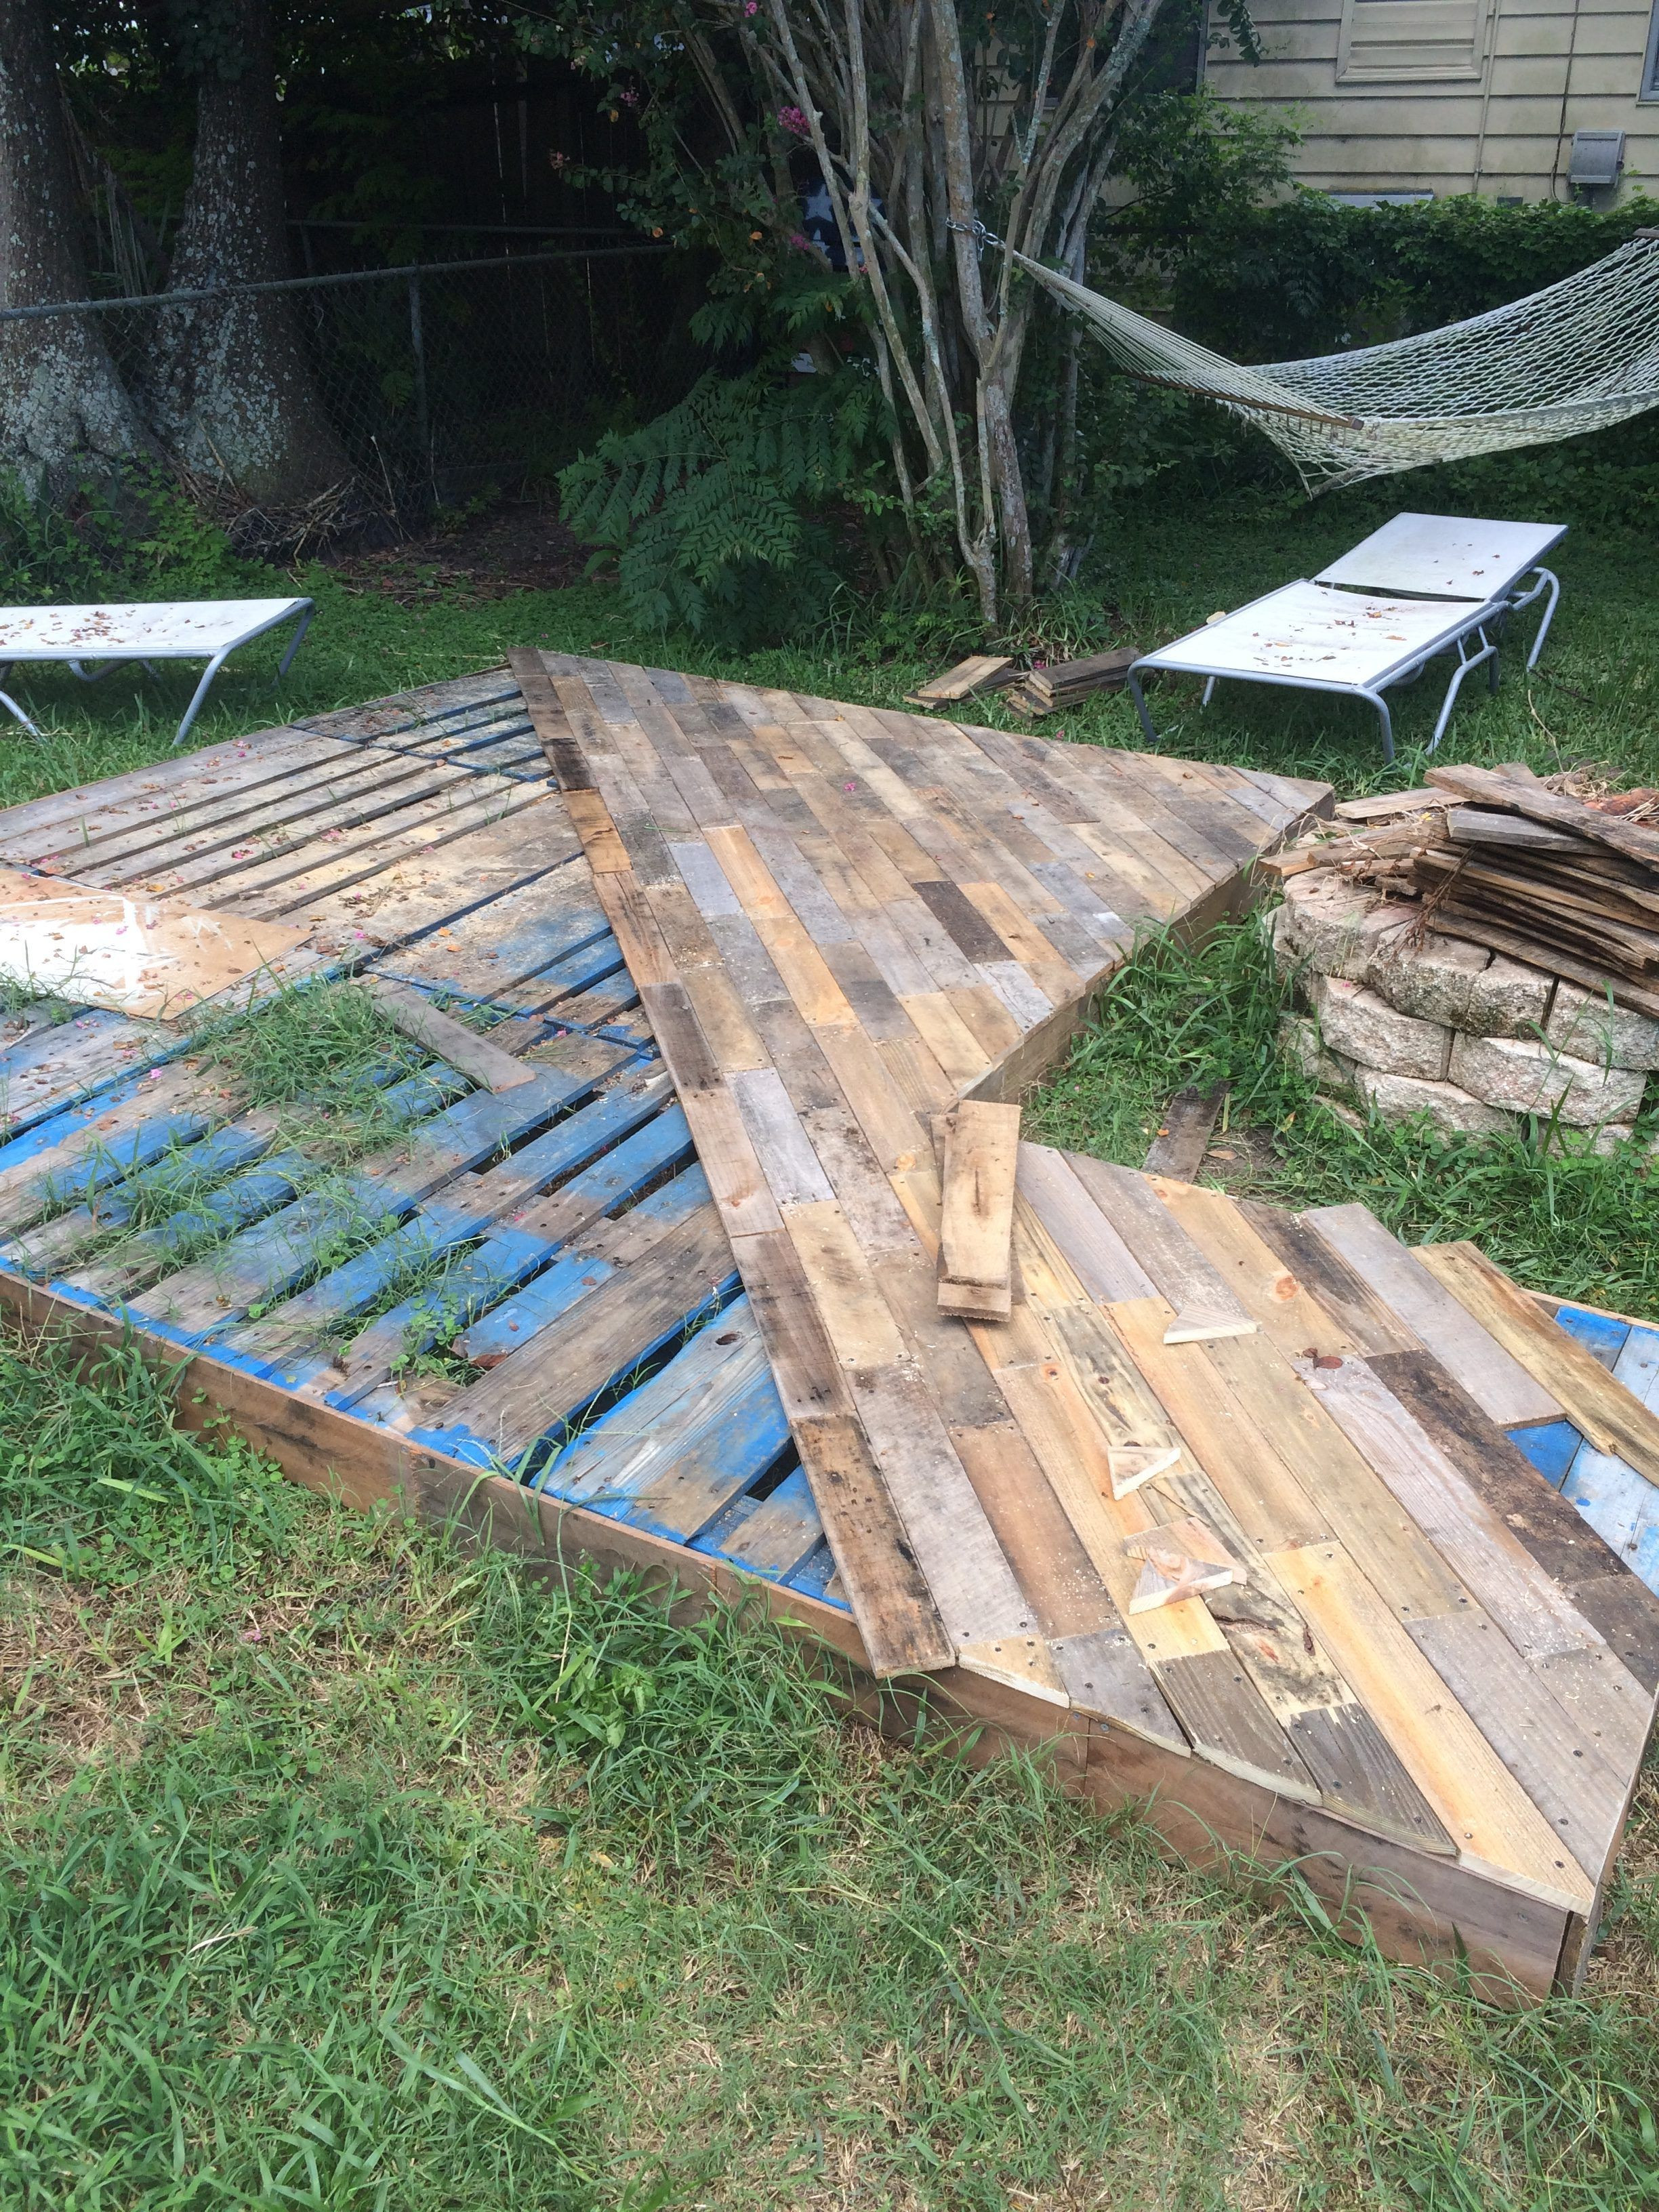 Best ideas about DIY Pallet Deck . Save or Pin Patio Deck Out 25 Wooden Pallets Now.